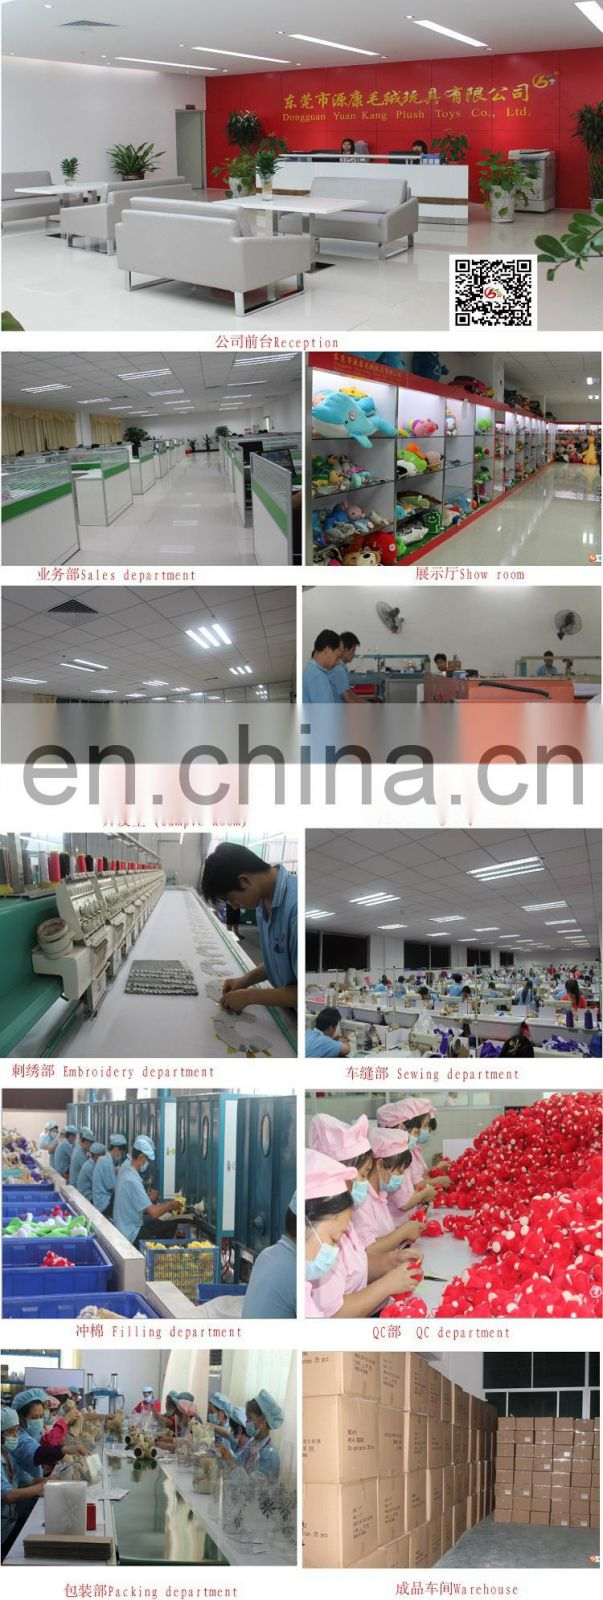 Brand car china wholesale electronics & toys products from china